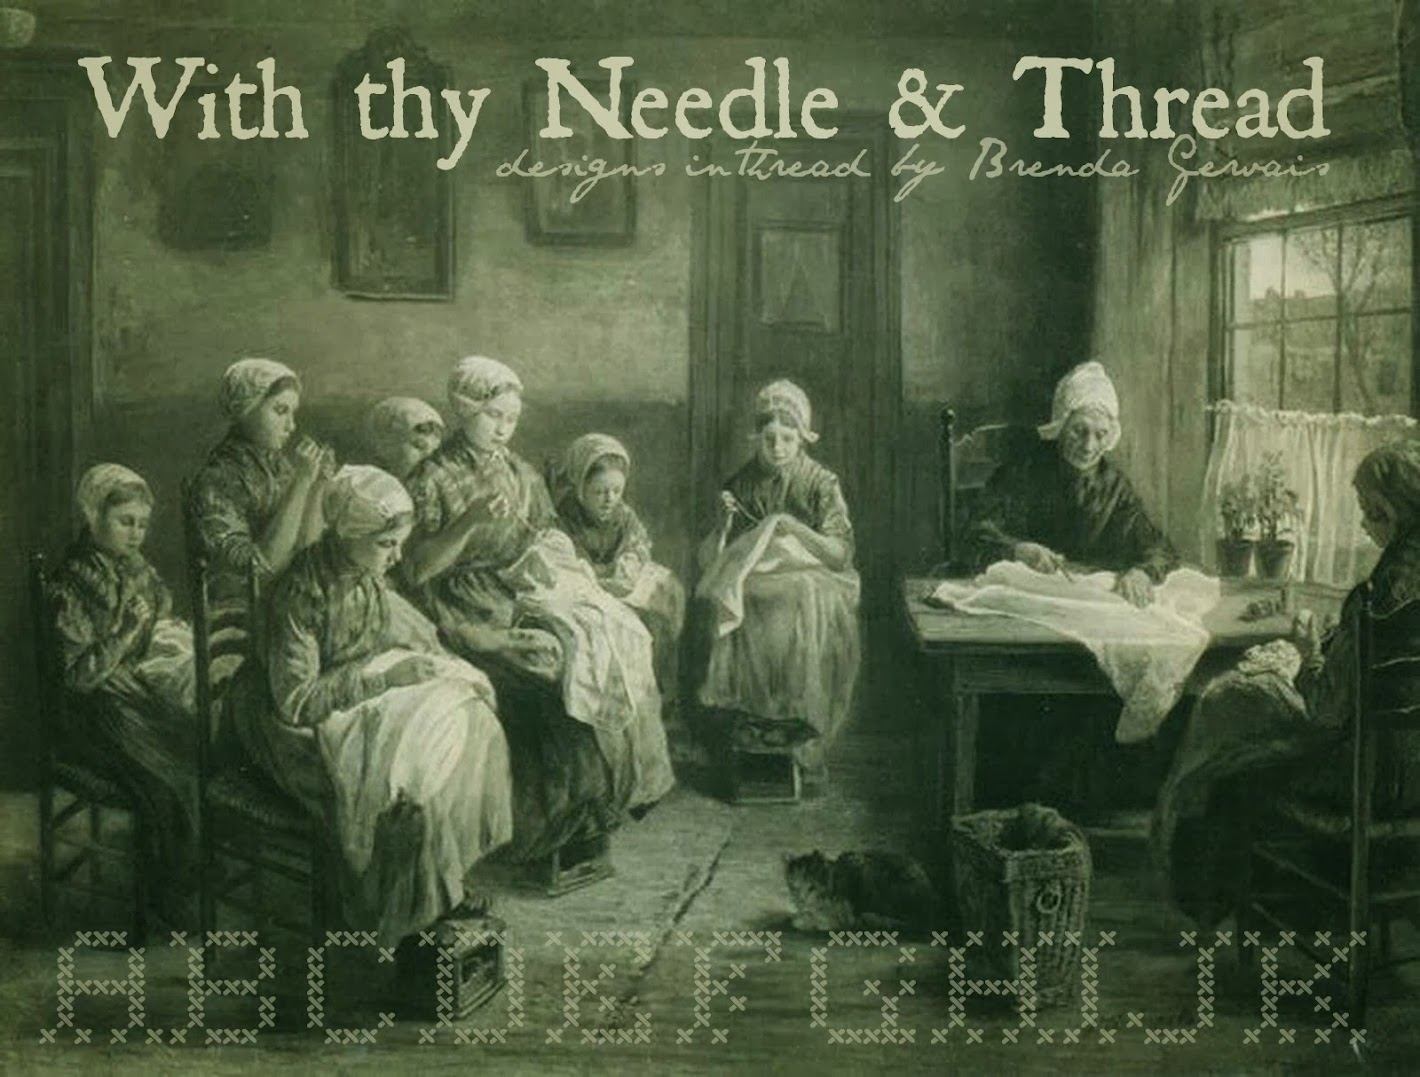 With thy Needle & Thread